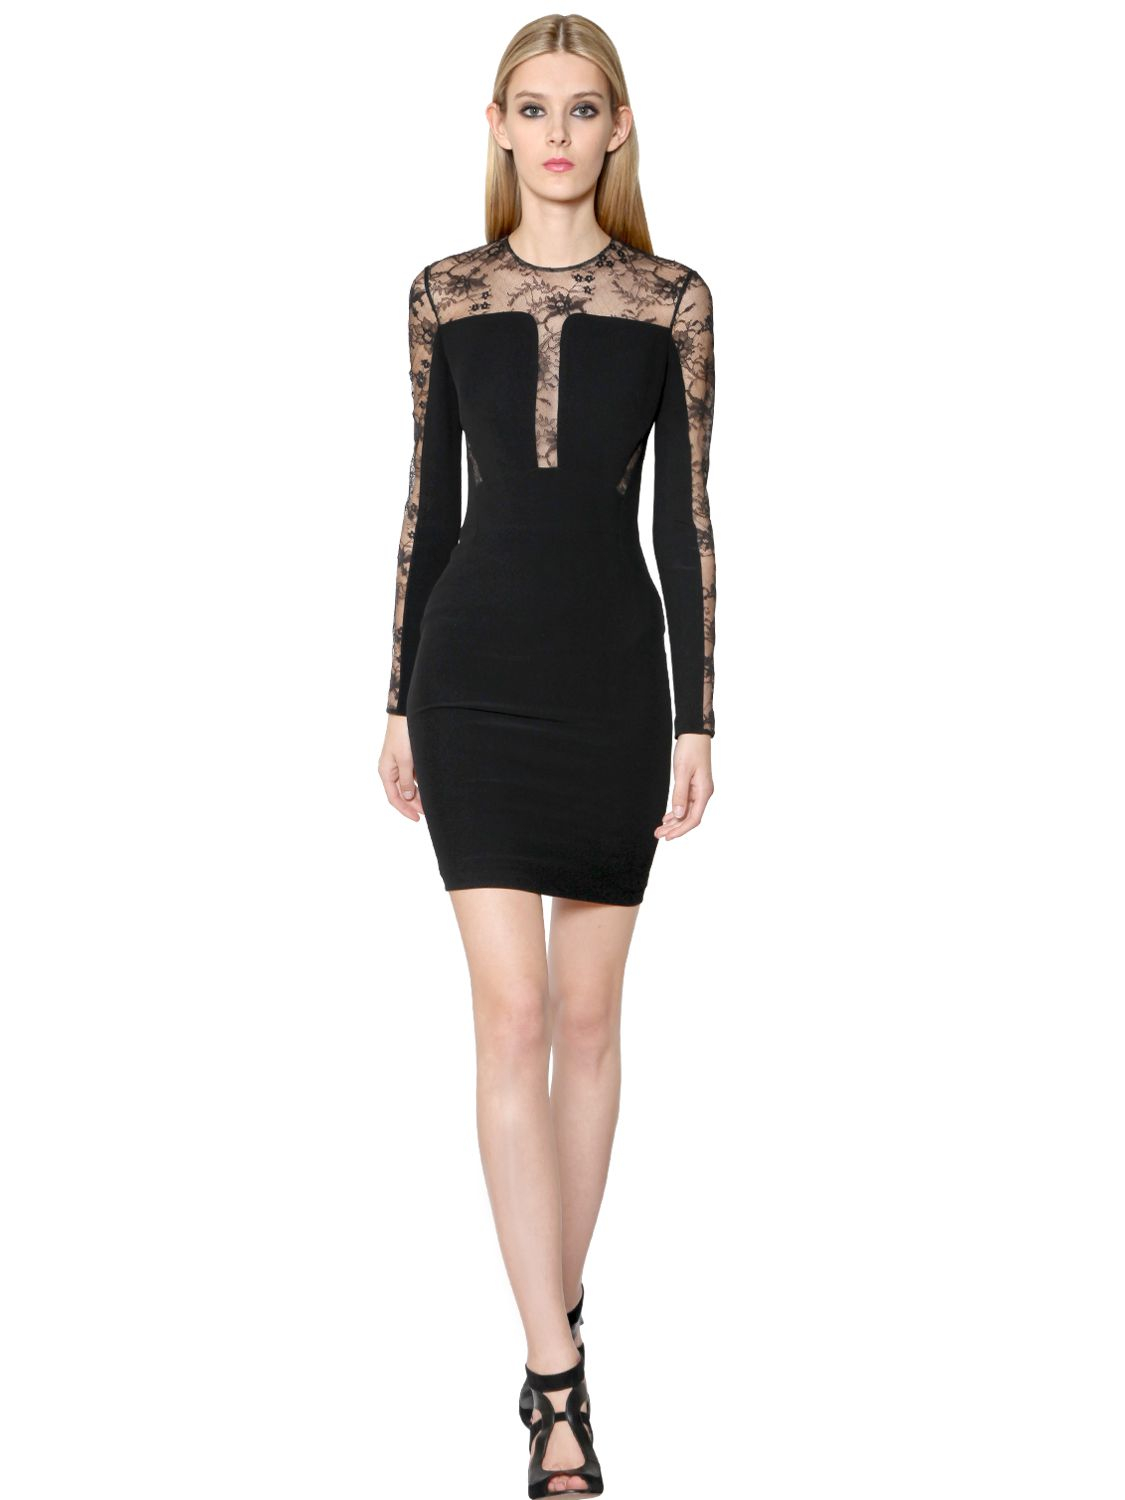 Lyst - Elie Saab Viscose Crepe Cady And Lace Dress in Black